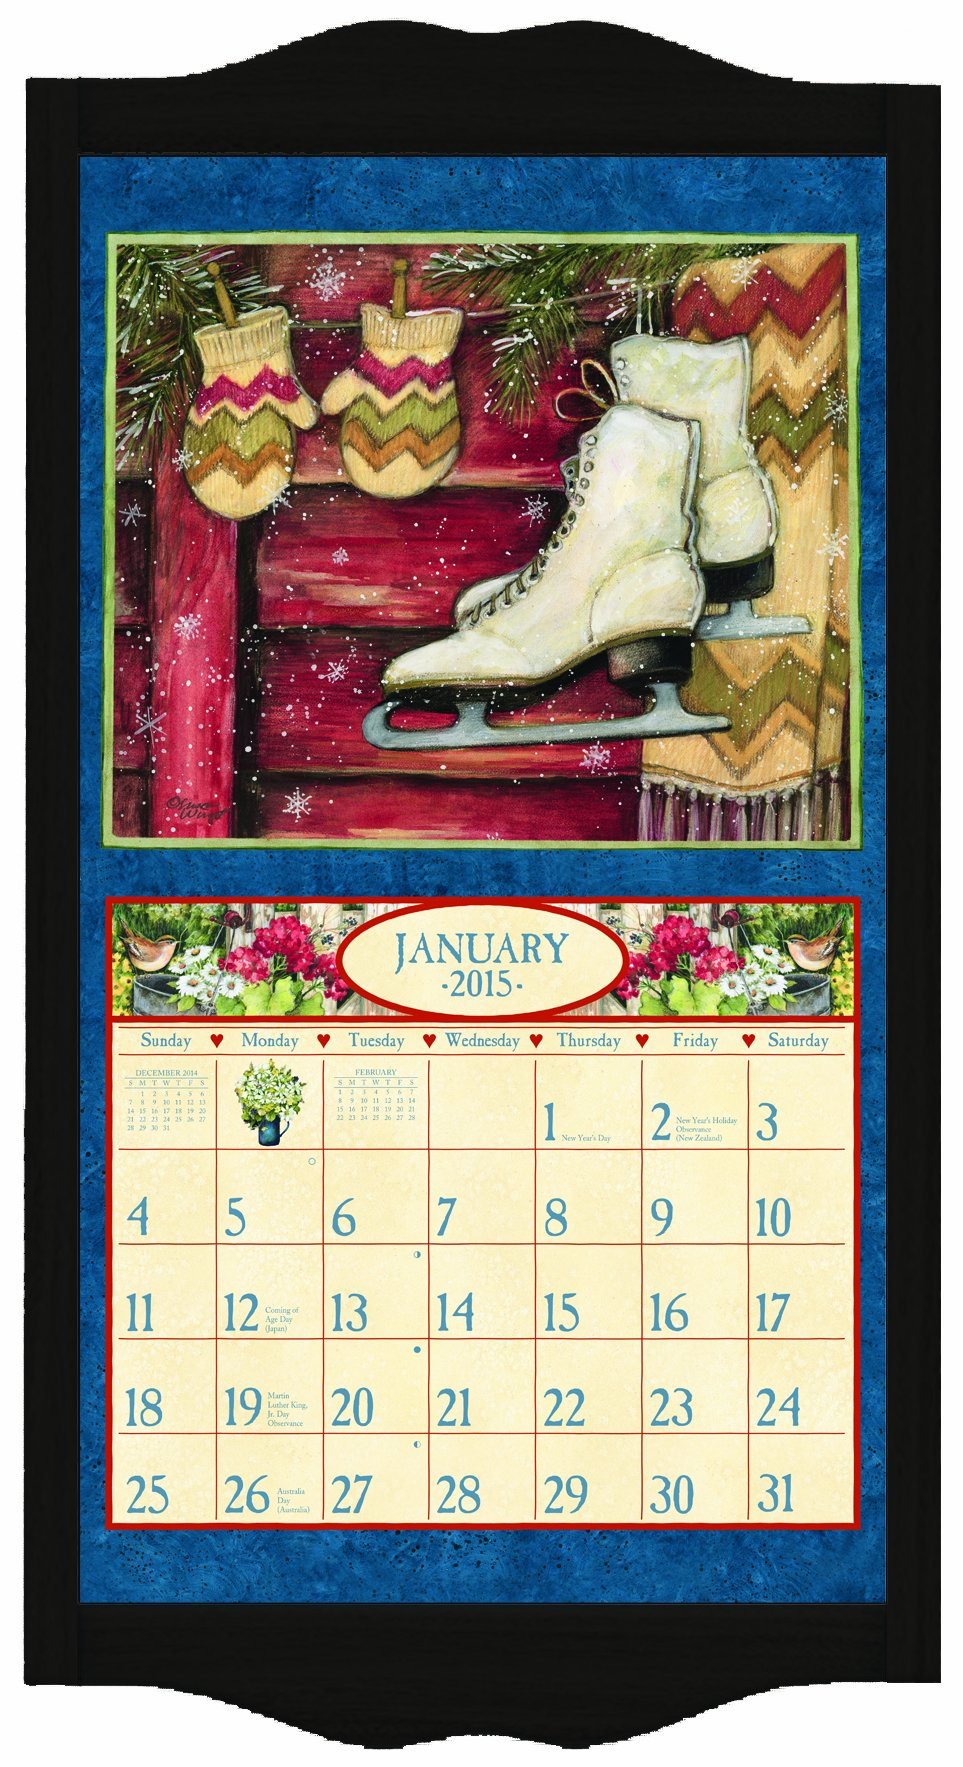 Lang Perfect Timing Lang Classic Black Diamond Calendar Frame, 15 x 25.25 Inches (1016003) by LANG